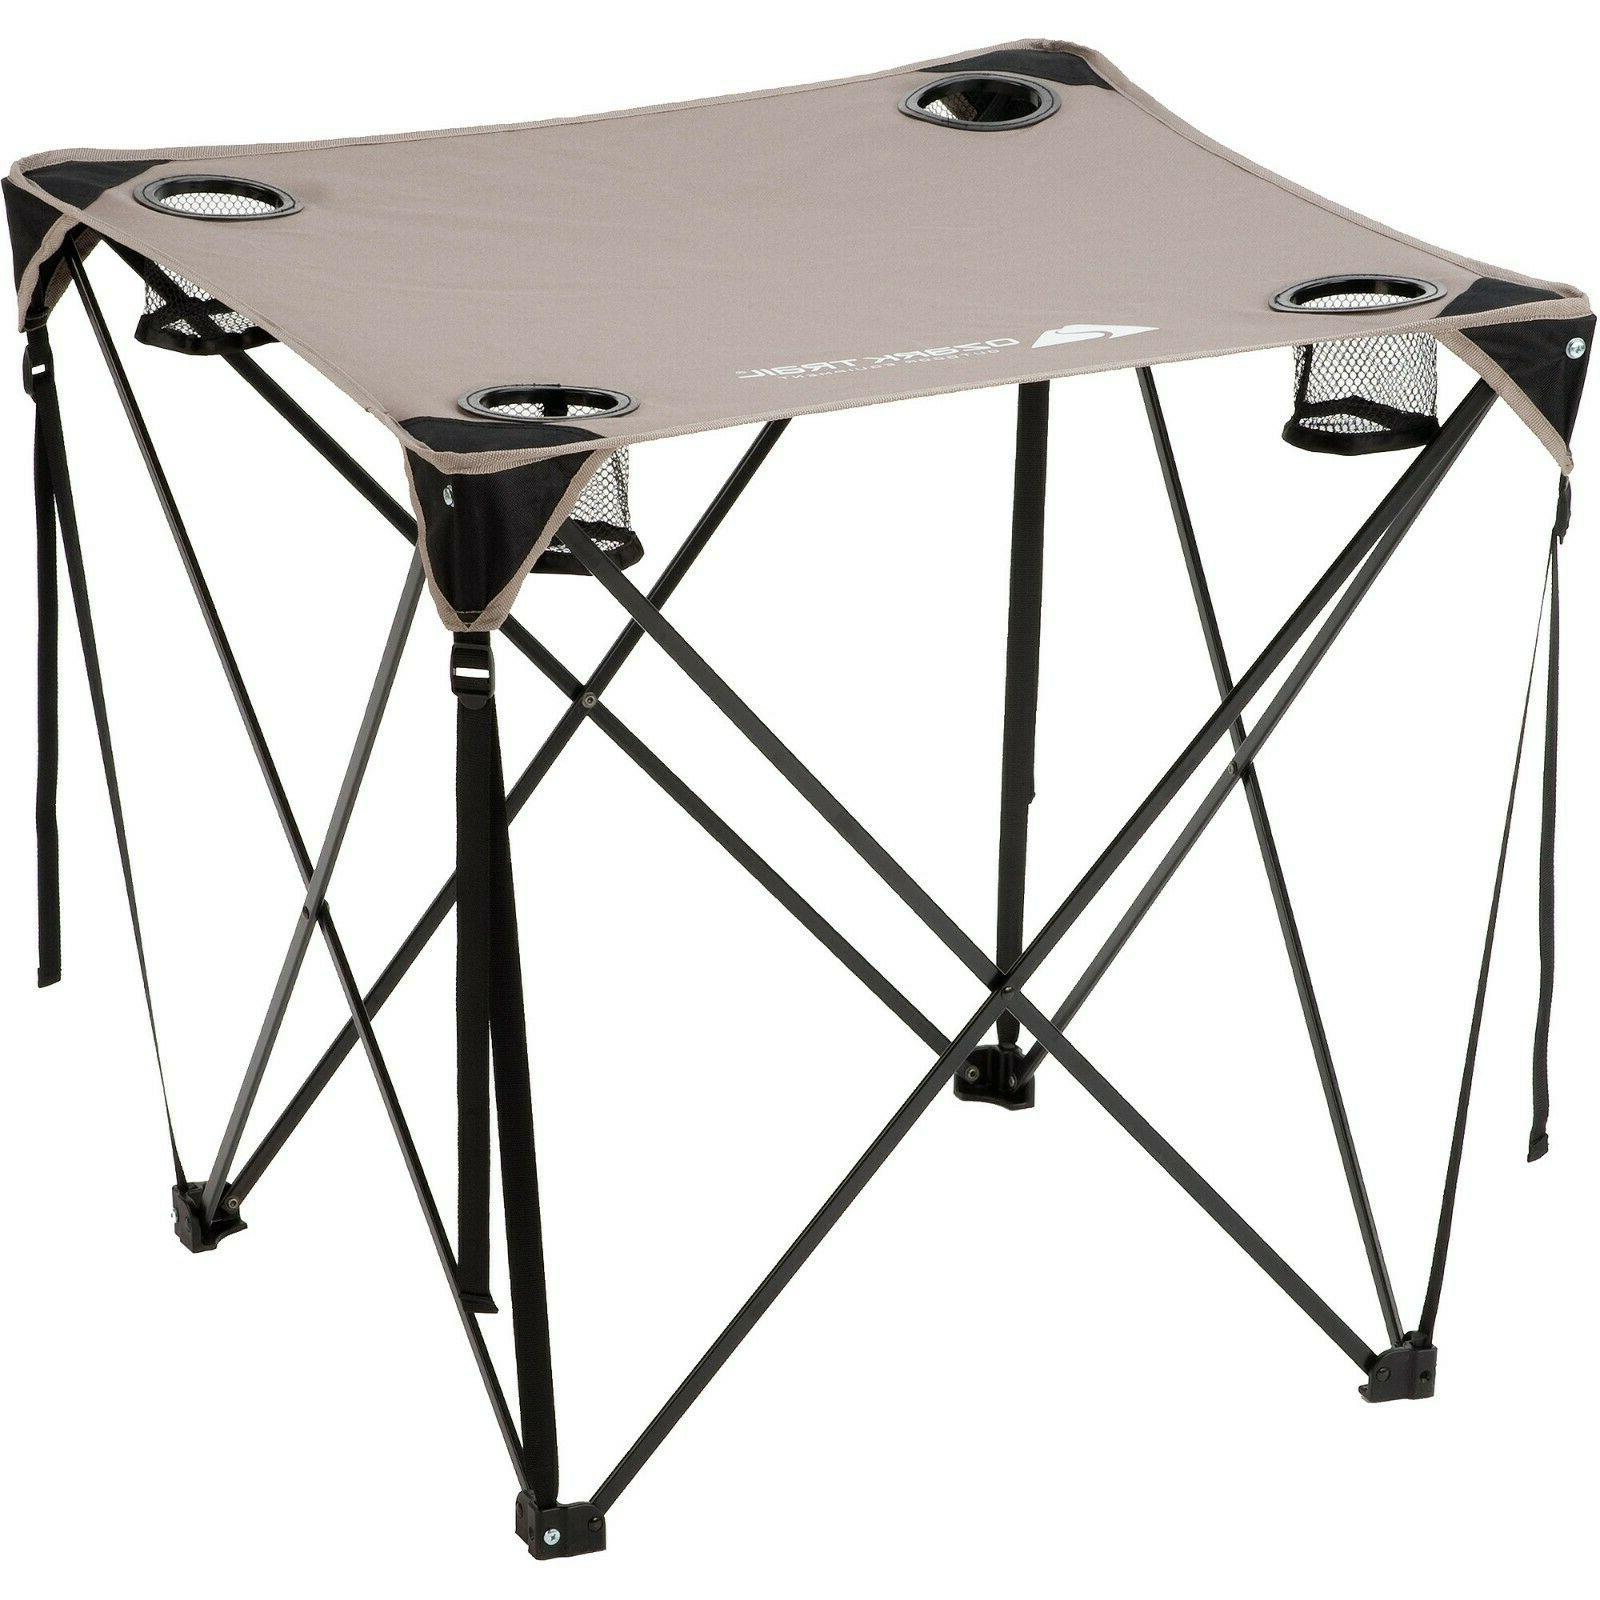 Ozark Trail Durable Camping Outdoor Quad Table Cup Holders